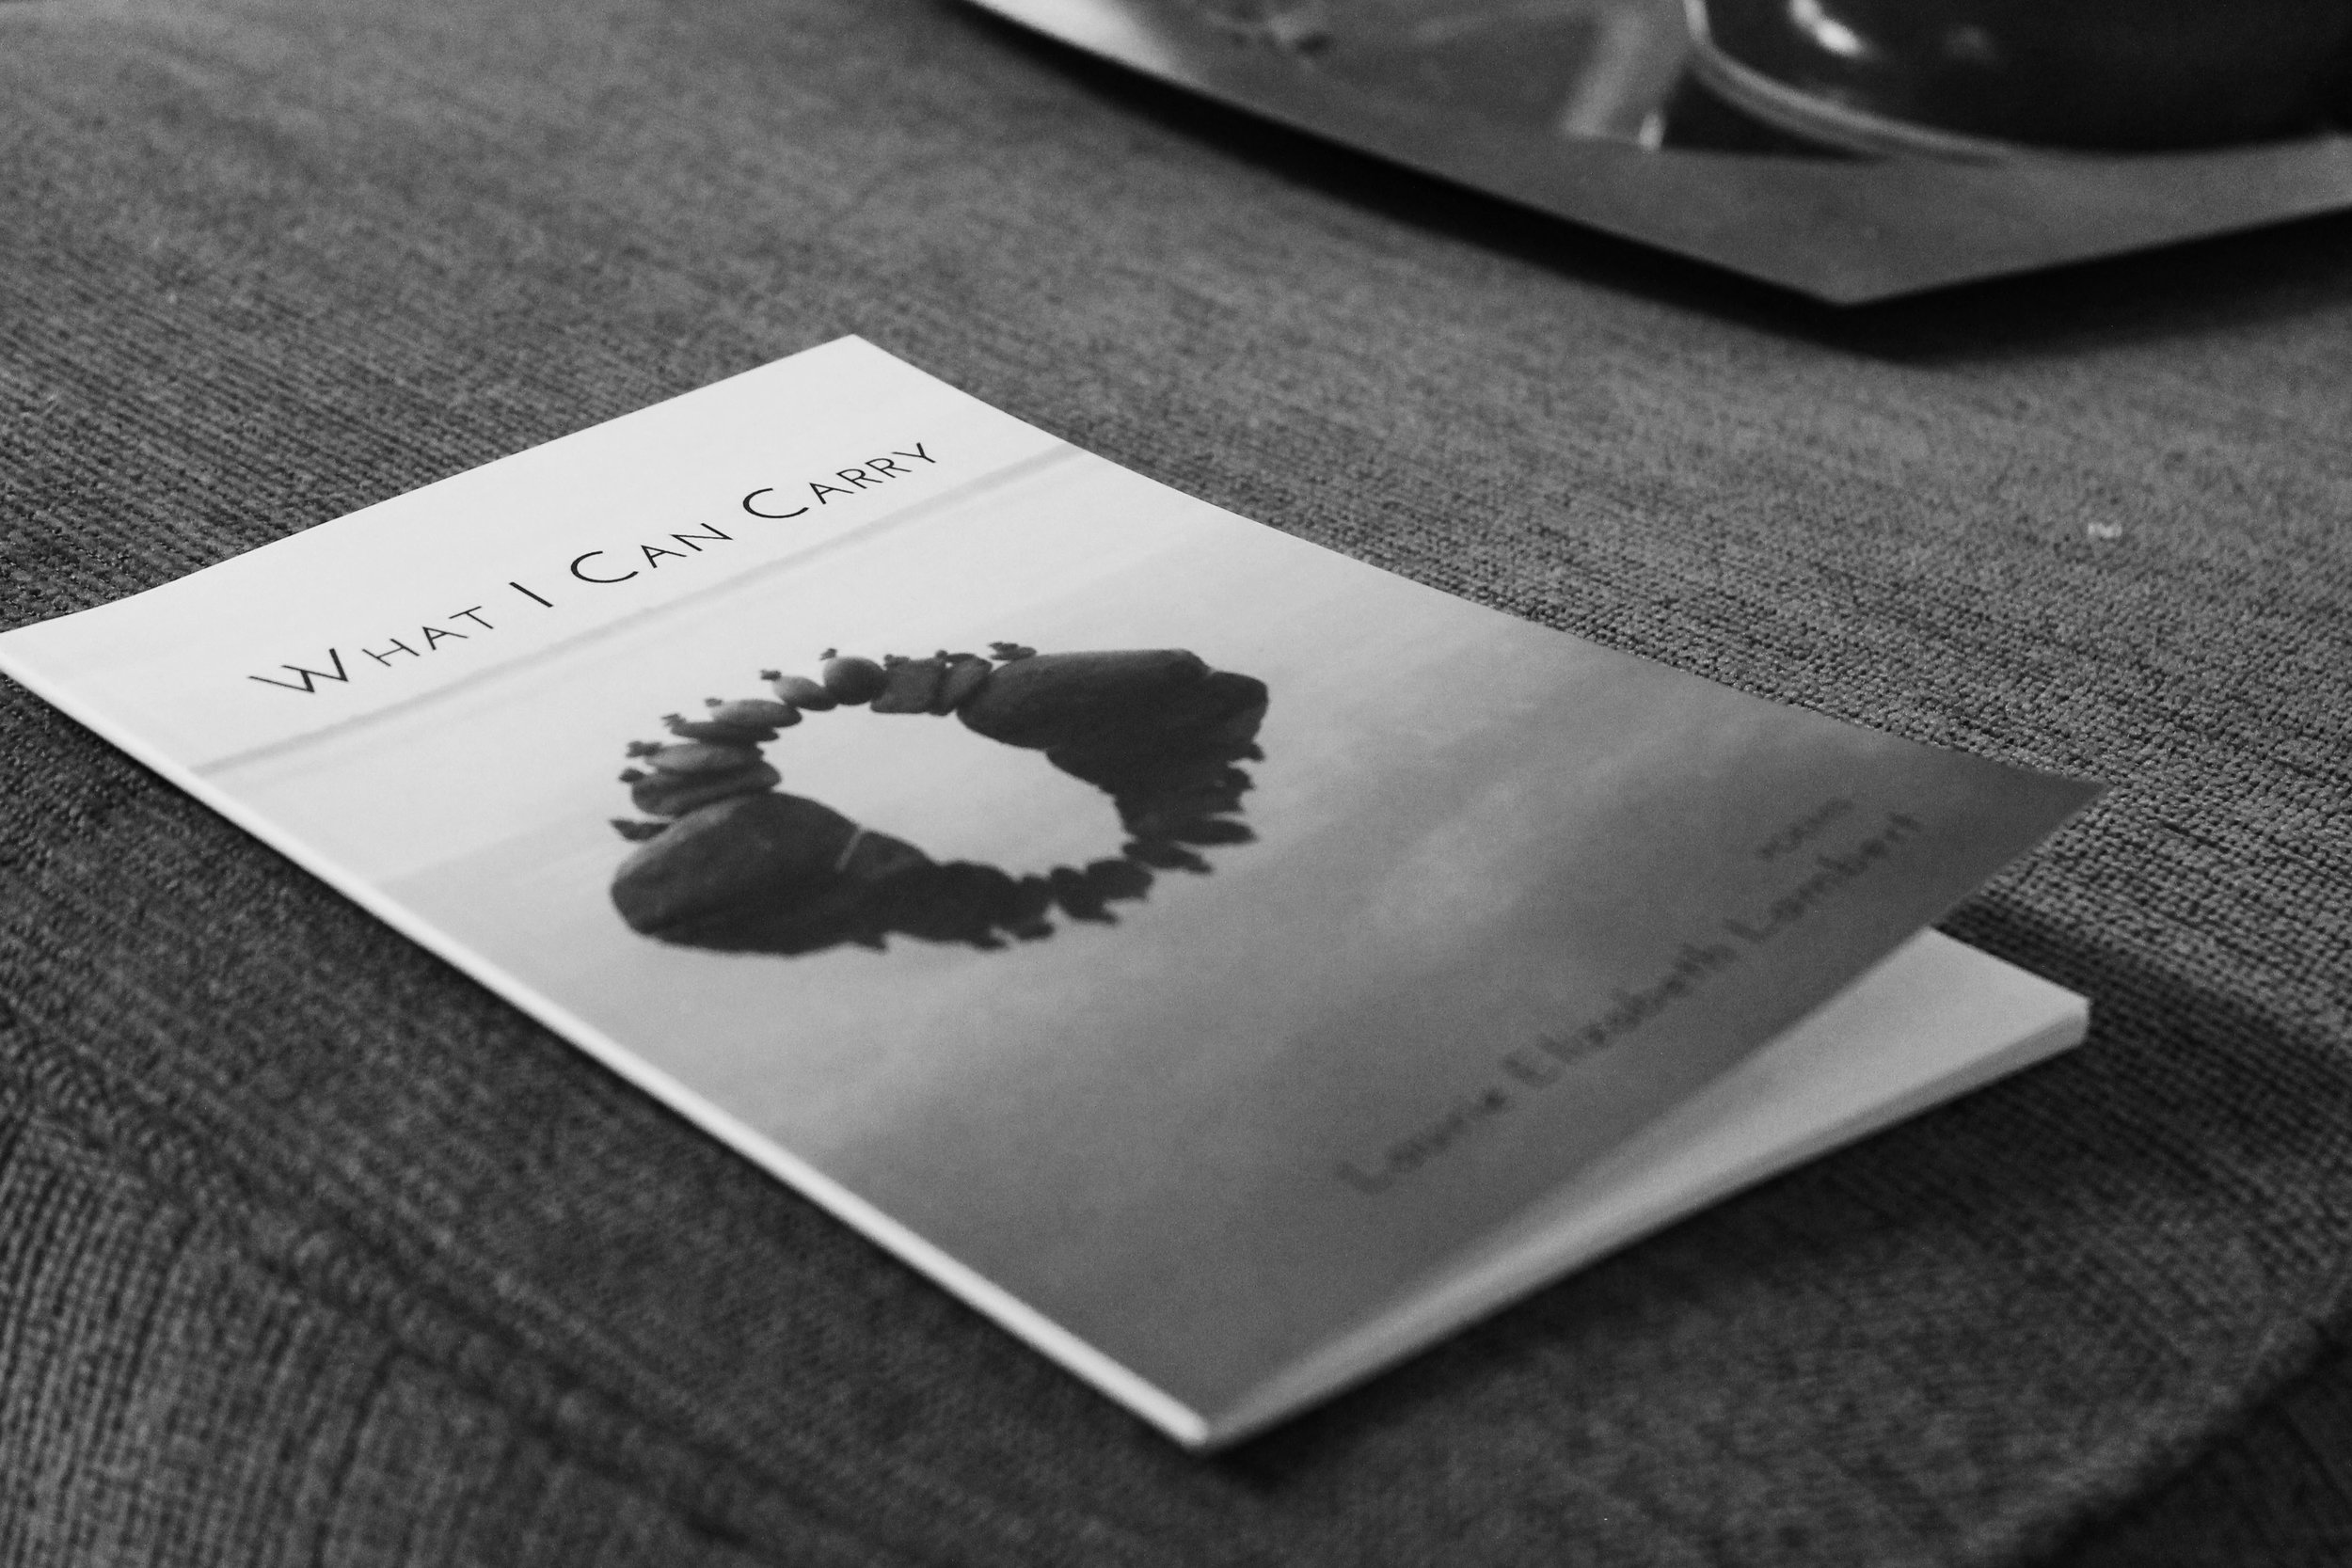 A copy of Laurie Lambert's book,  What I Can Carry .